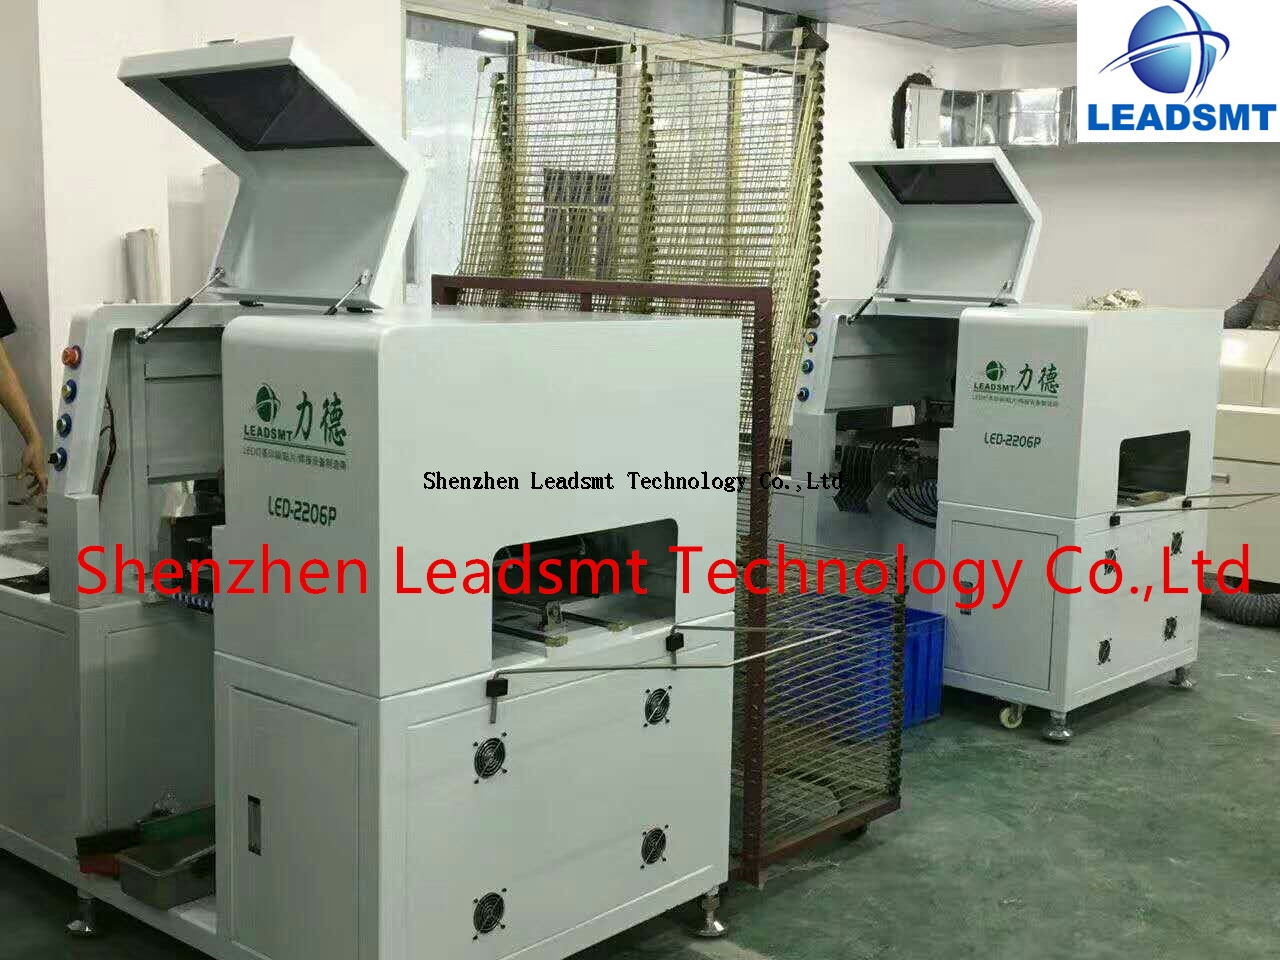 SMD LED PICK AND PLACE MACHINE FOR LED LIGHTS MANUFACTURE